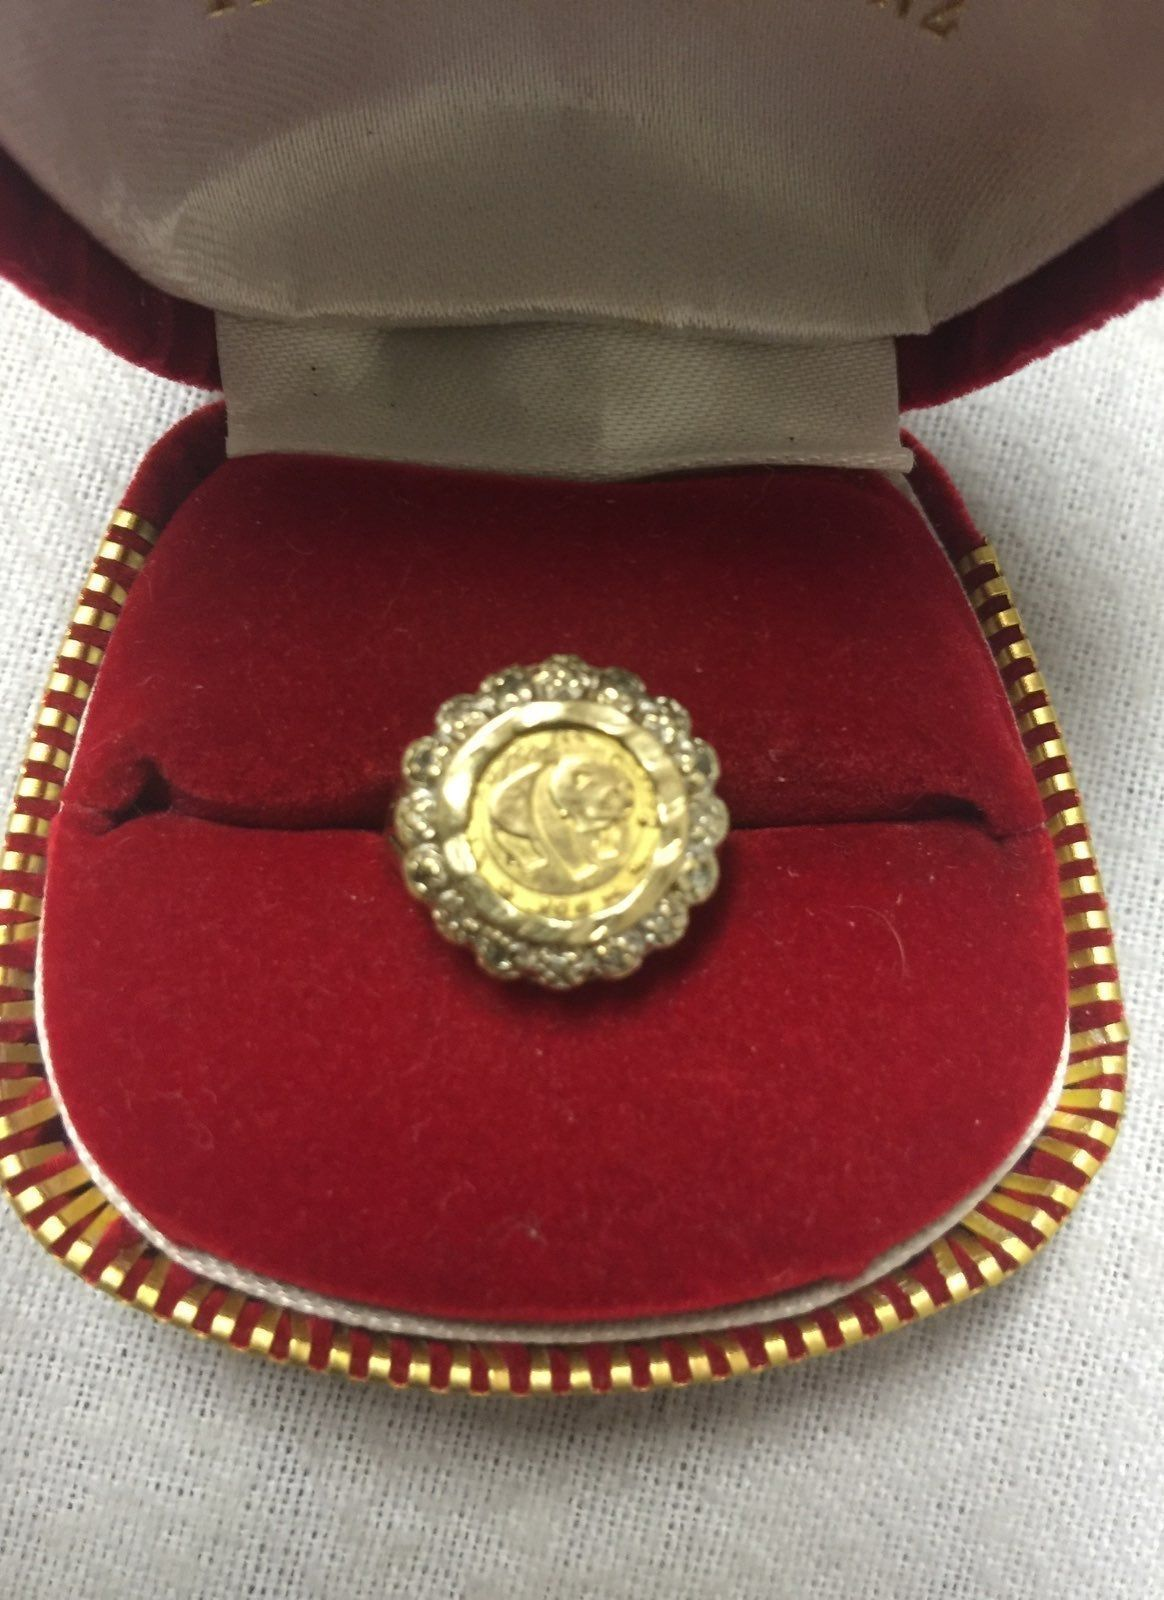 Selling A Beautiful 1983 Chinese Panda Copy Ring The Ring Is 10k And Coin Stamp 99 9 Gold Content In Chinese Which I Beli Gold Coin Ring Coin Ring Gold Coins